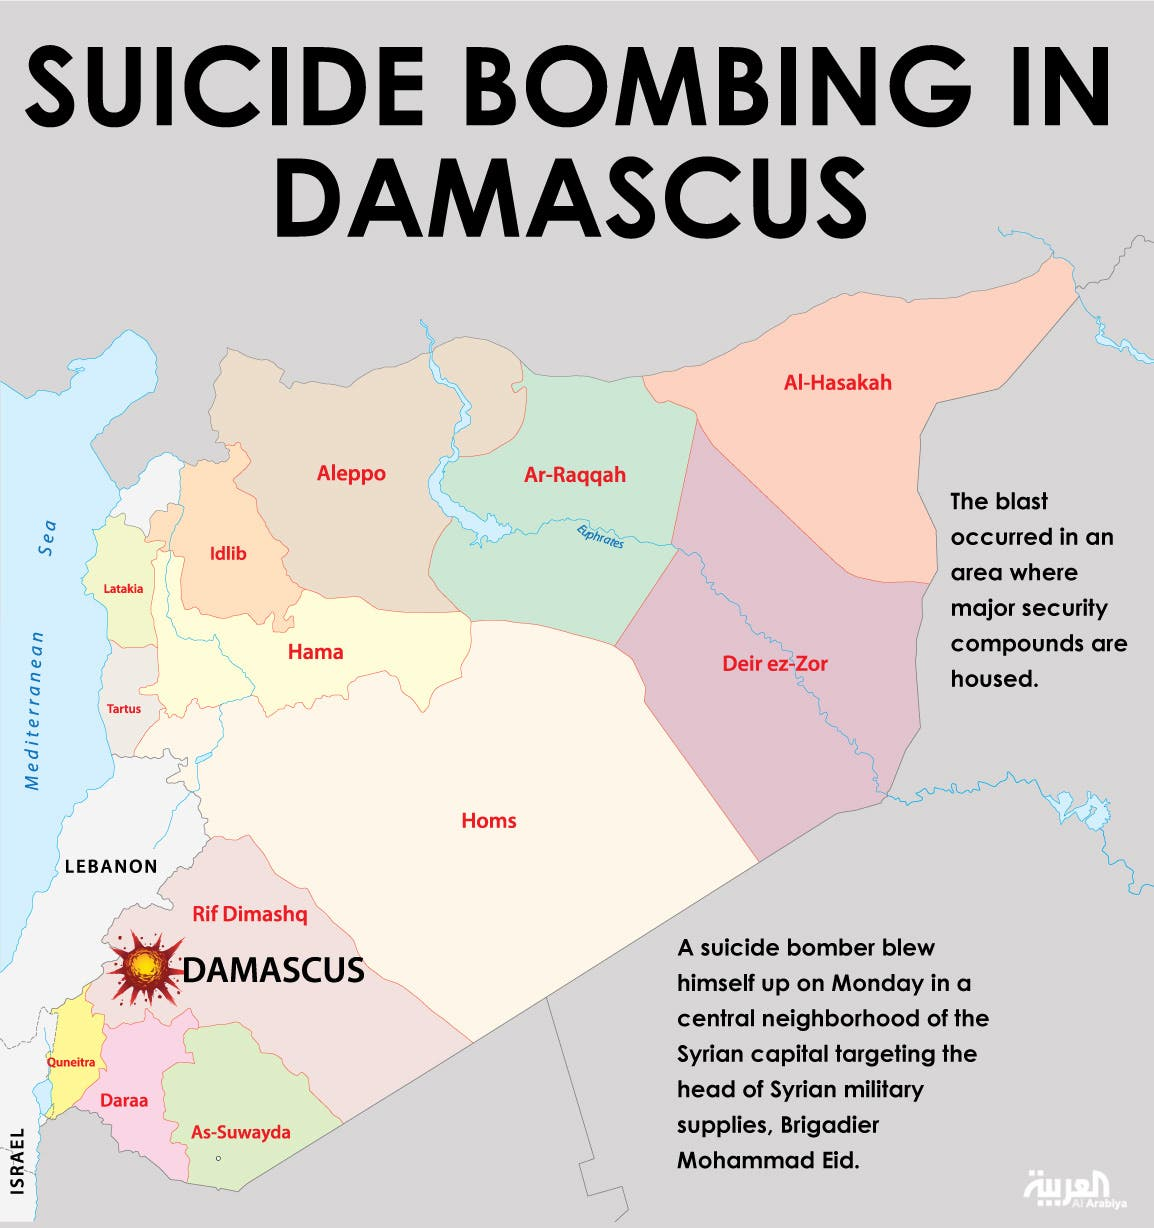 Infographic: Suicide bombing in Damascus